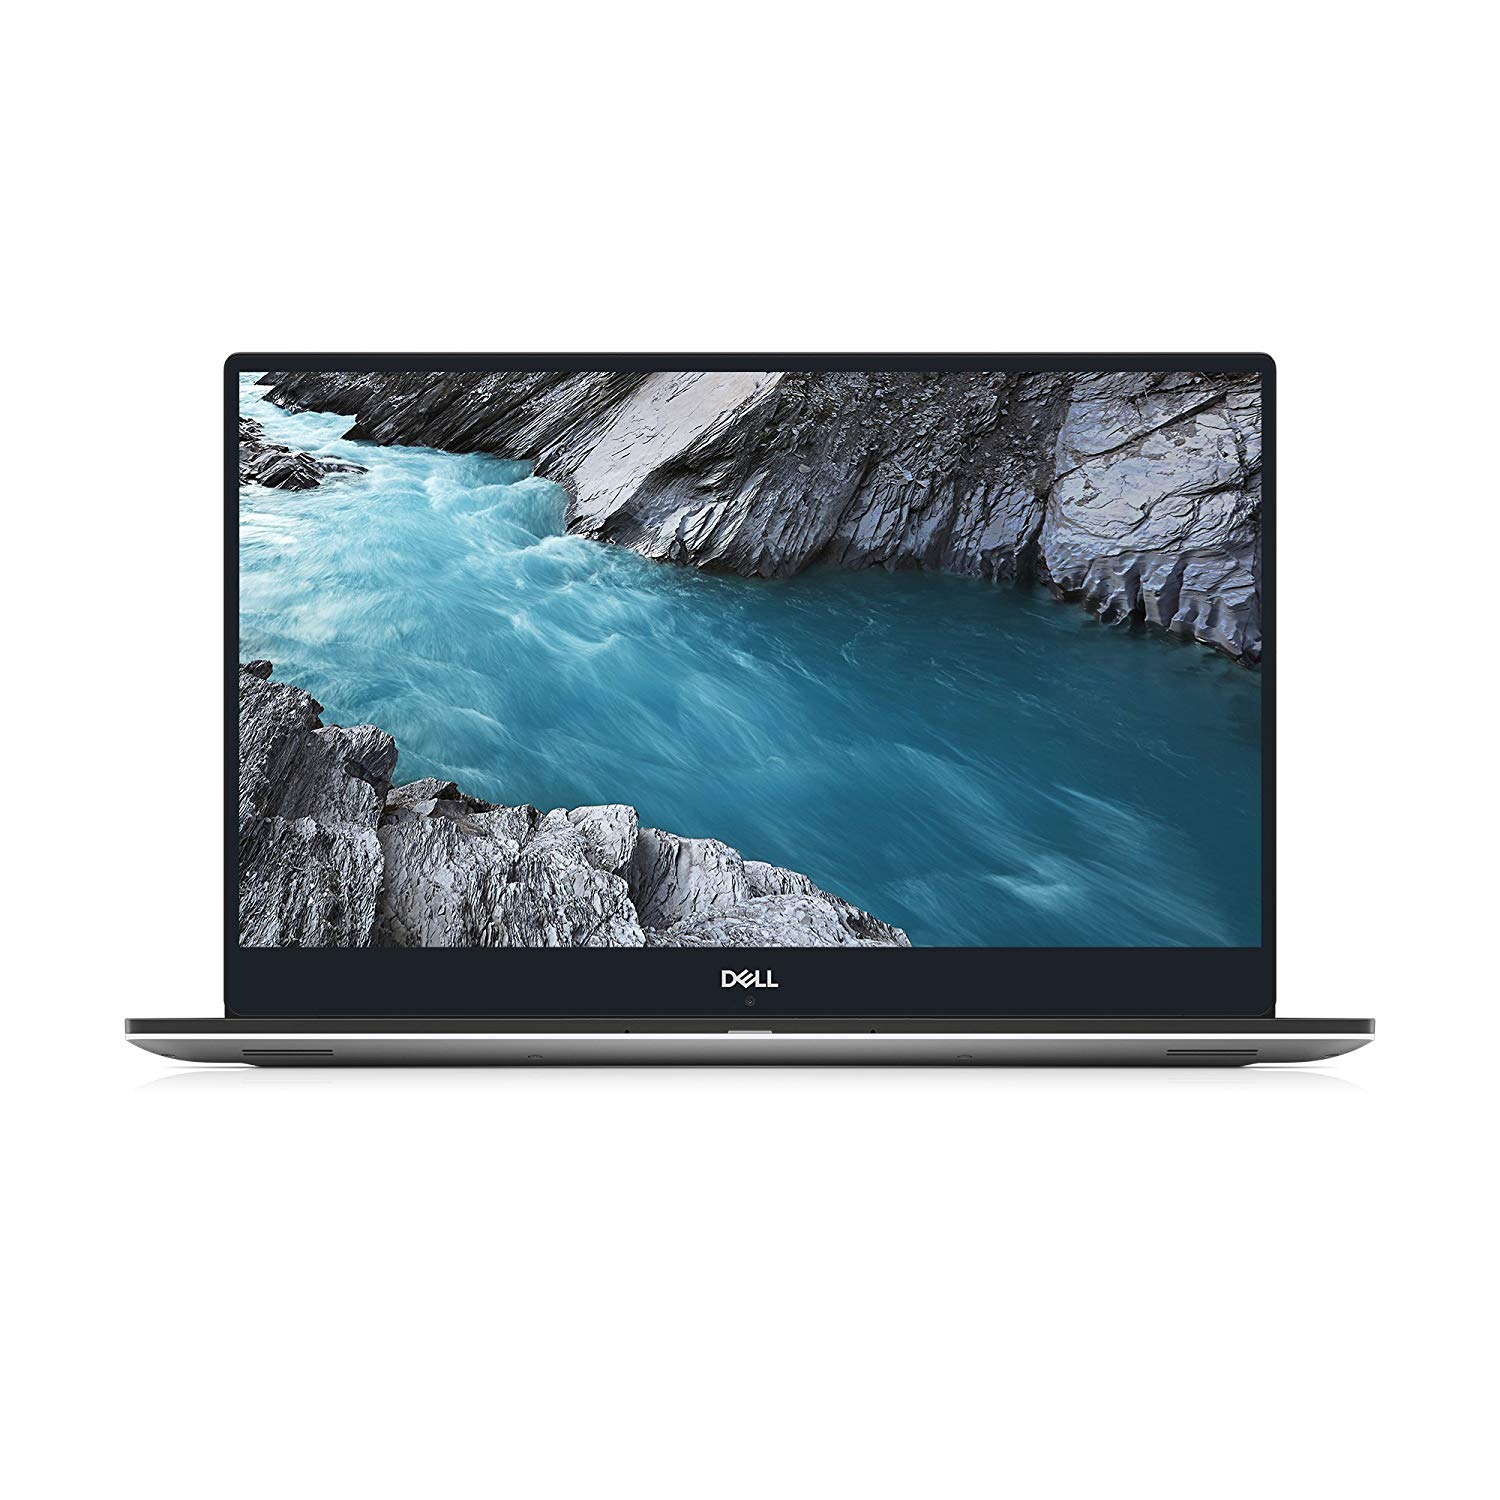 Dell XPS 15 - Best Price: $1349Best Previous Price $1530Current price 7/15 12:14AM PSThttps://amzn.to/2lnTSpD